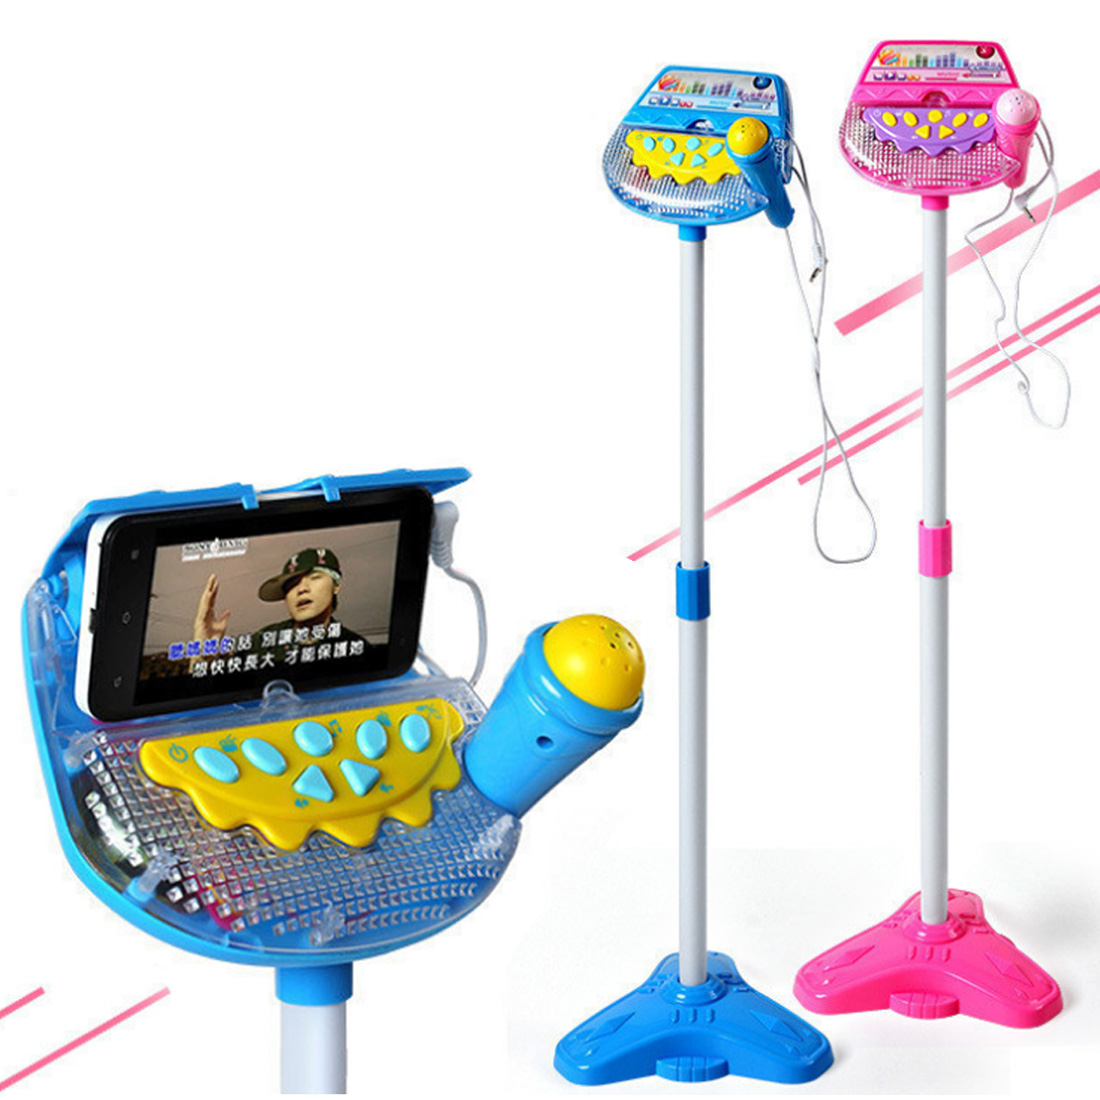 Surwish Kids Early Education Musical Toy Stand Type Music Microphone Adjustable Karaoke Microphone цена